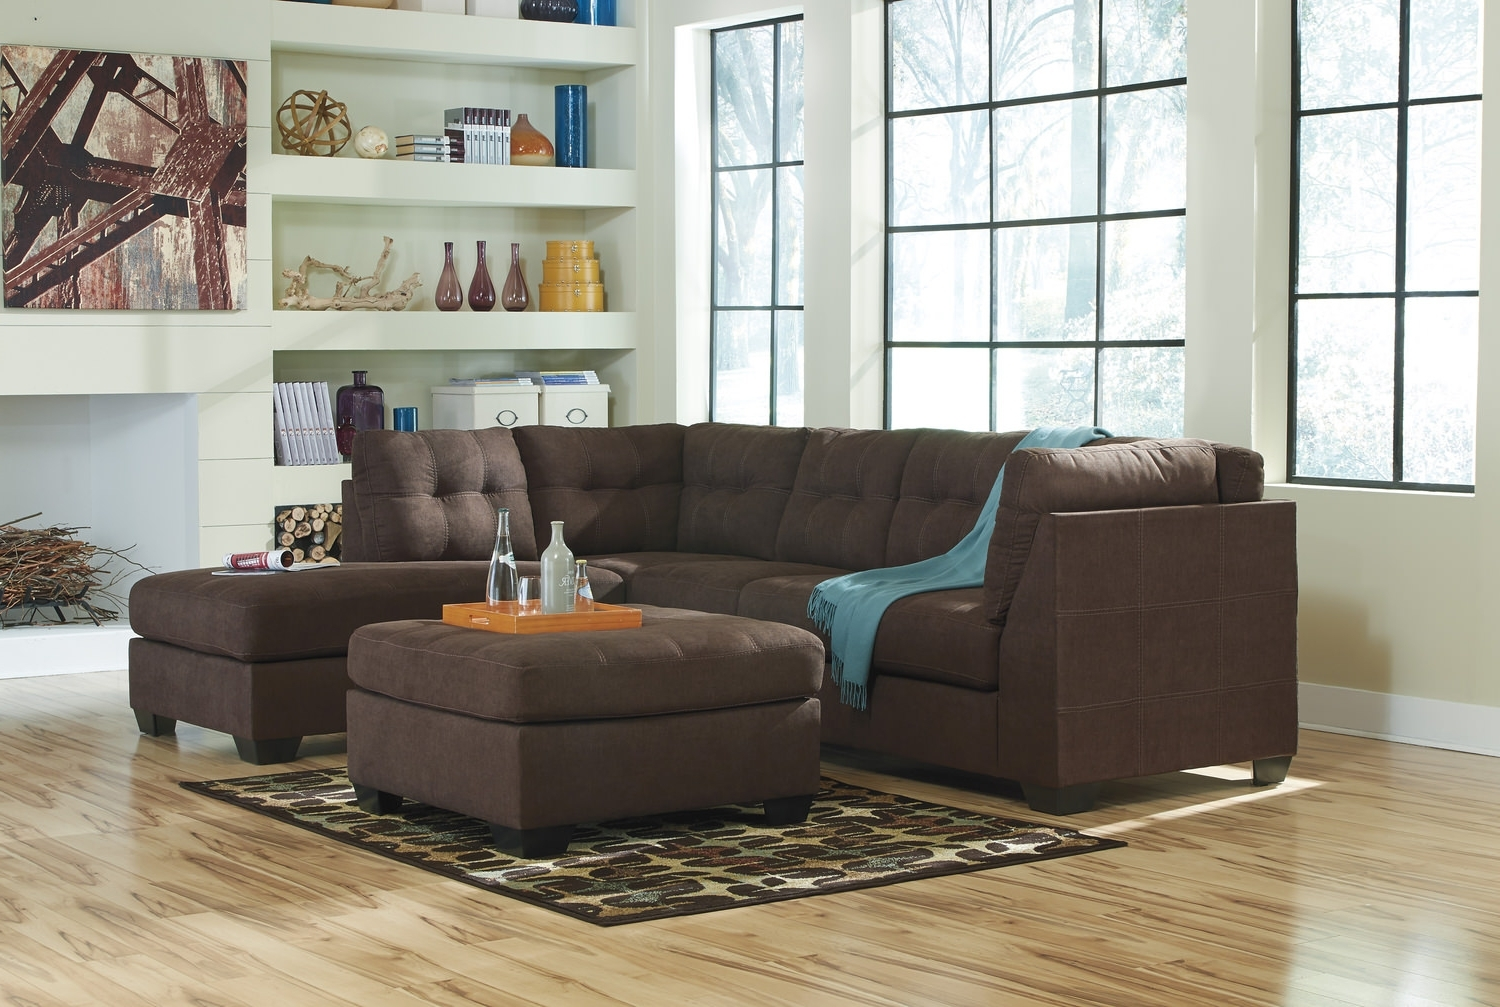 Furniture In Minneapolis Sectional Sofas (View 4 of 20)